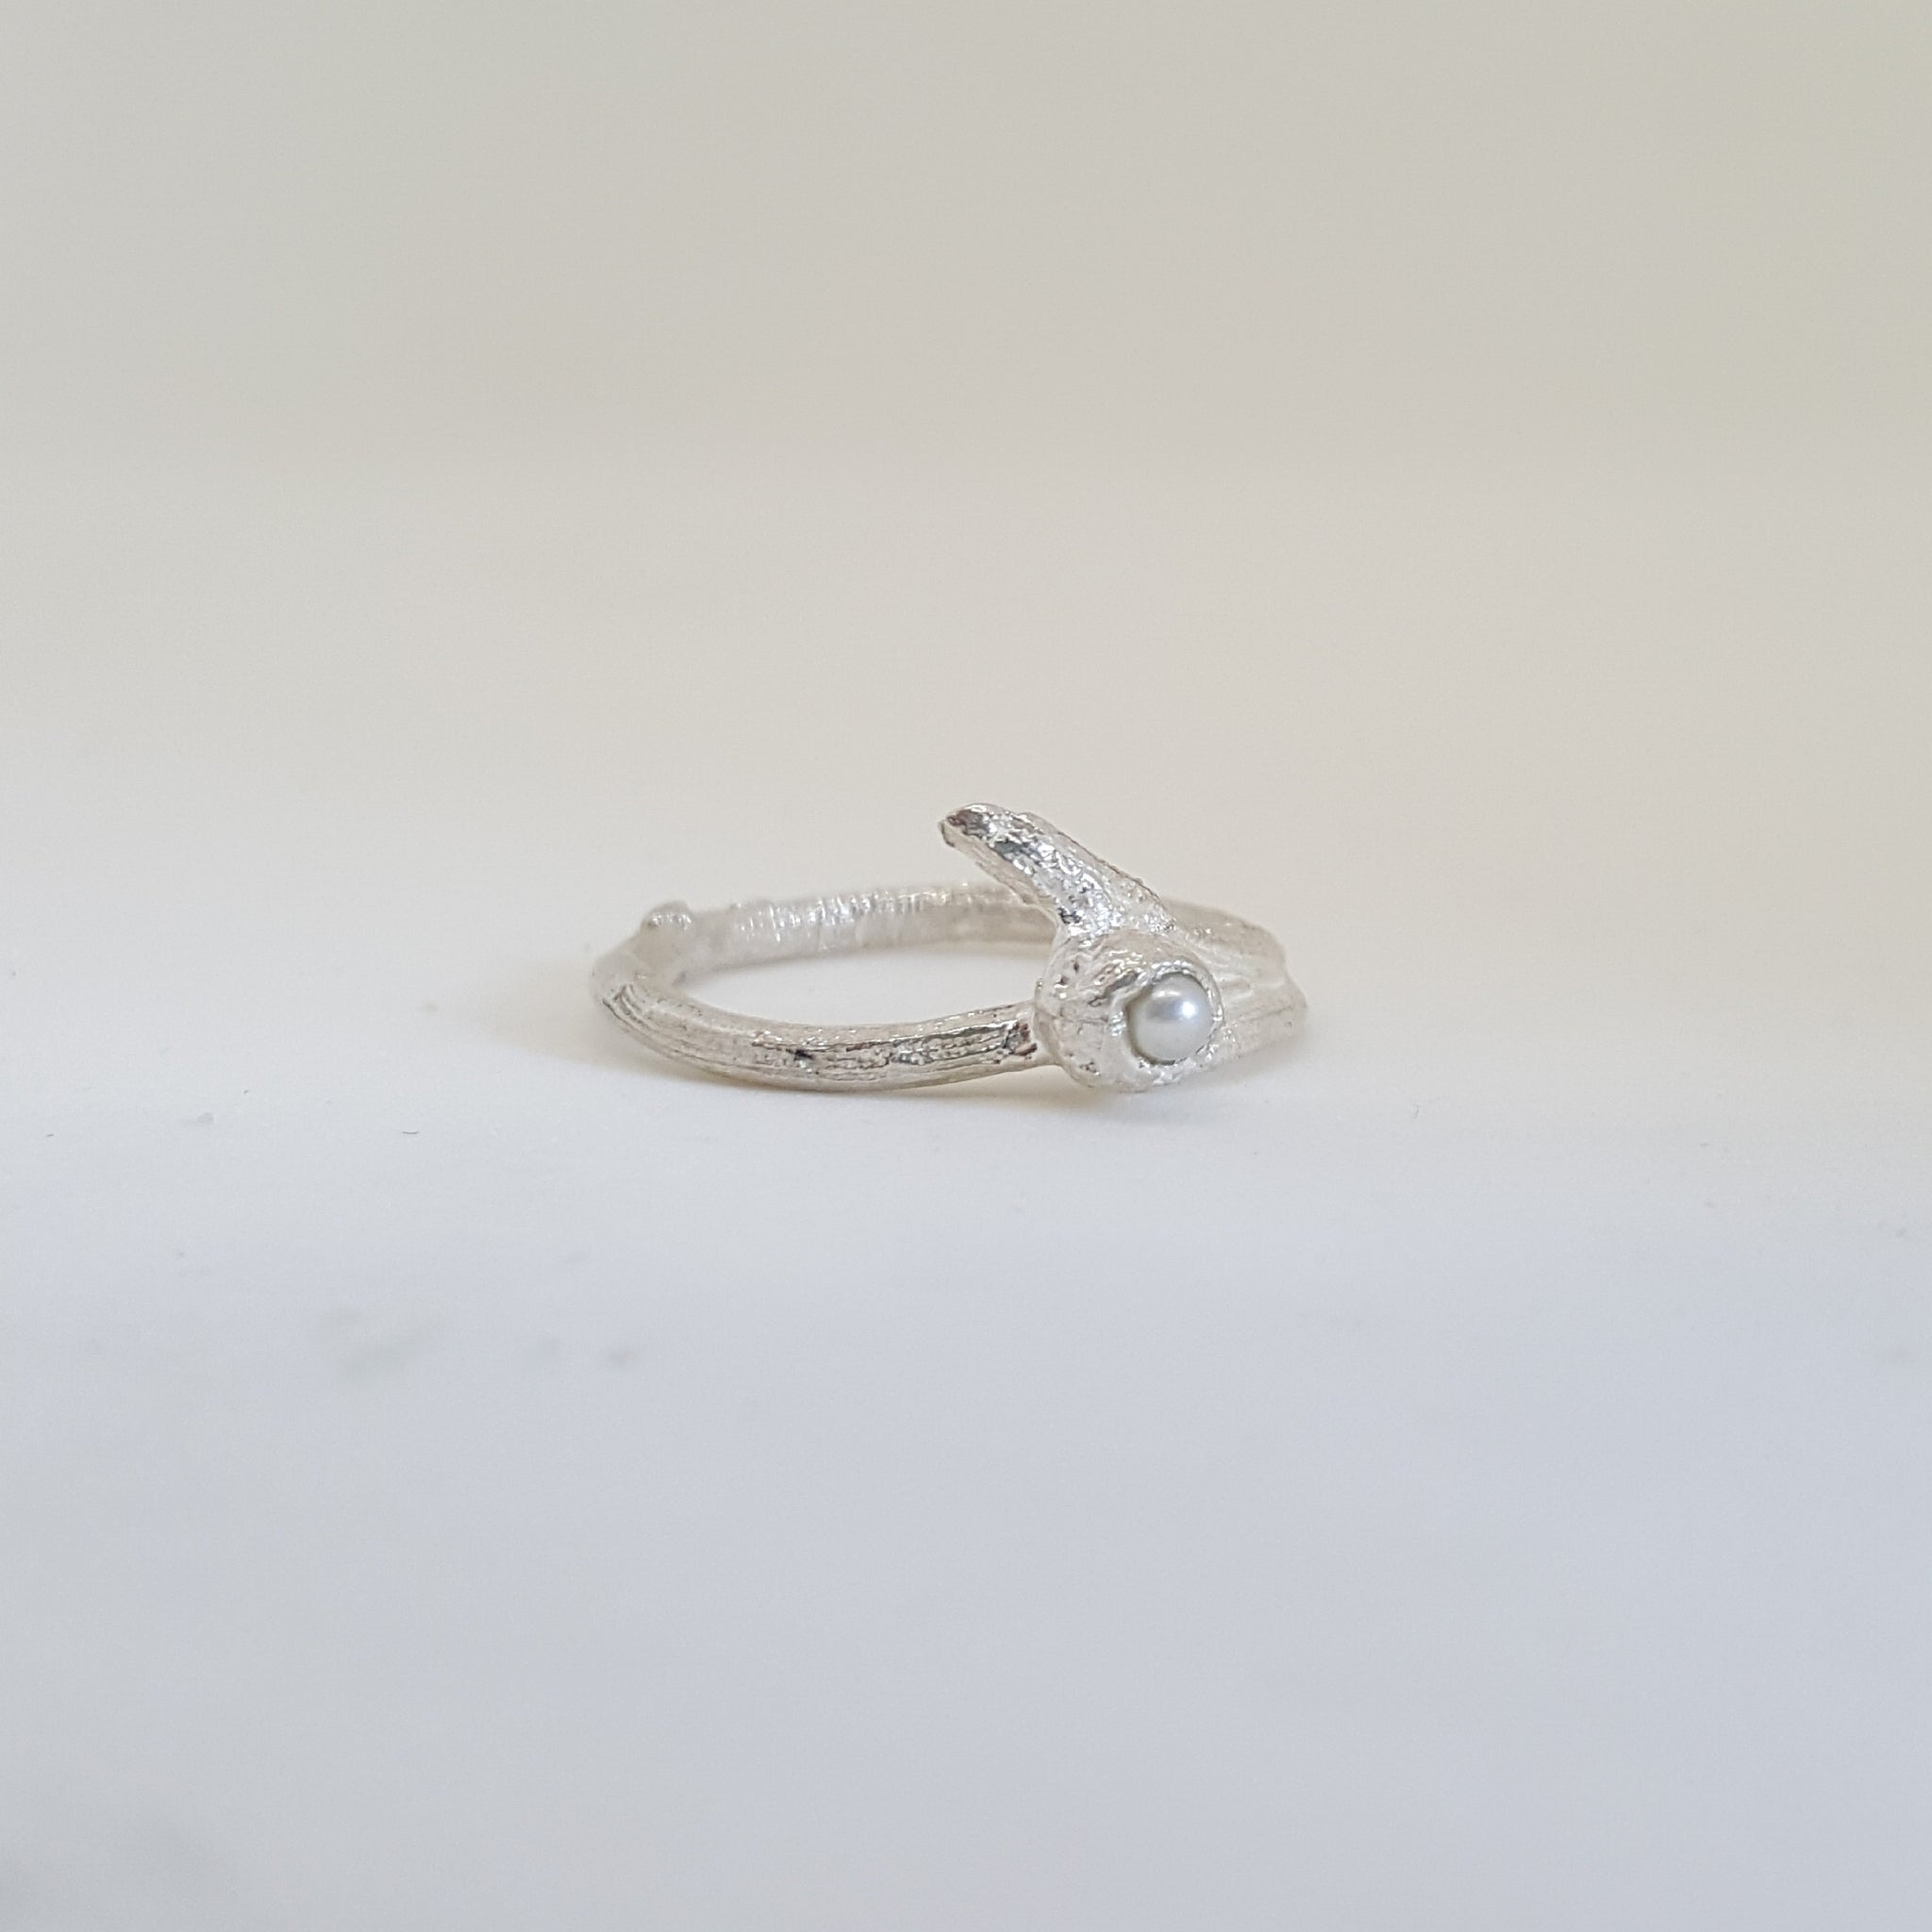 Sterling silver Snugglepot gum nut and Twig ring